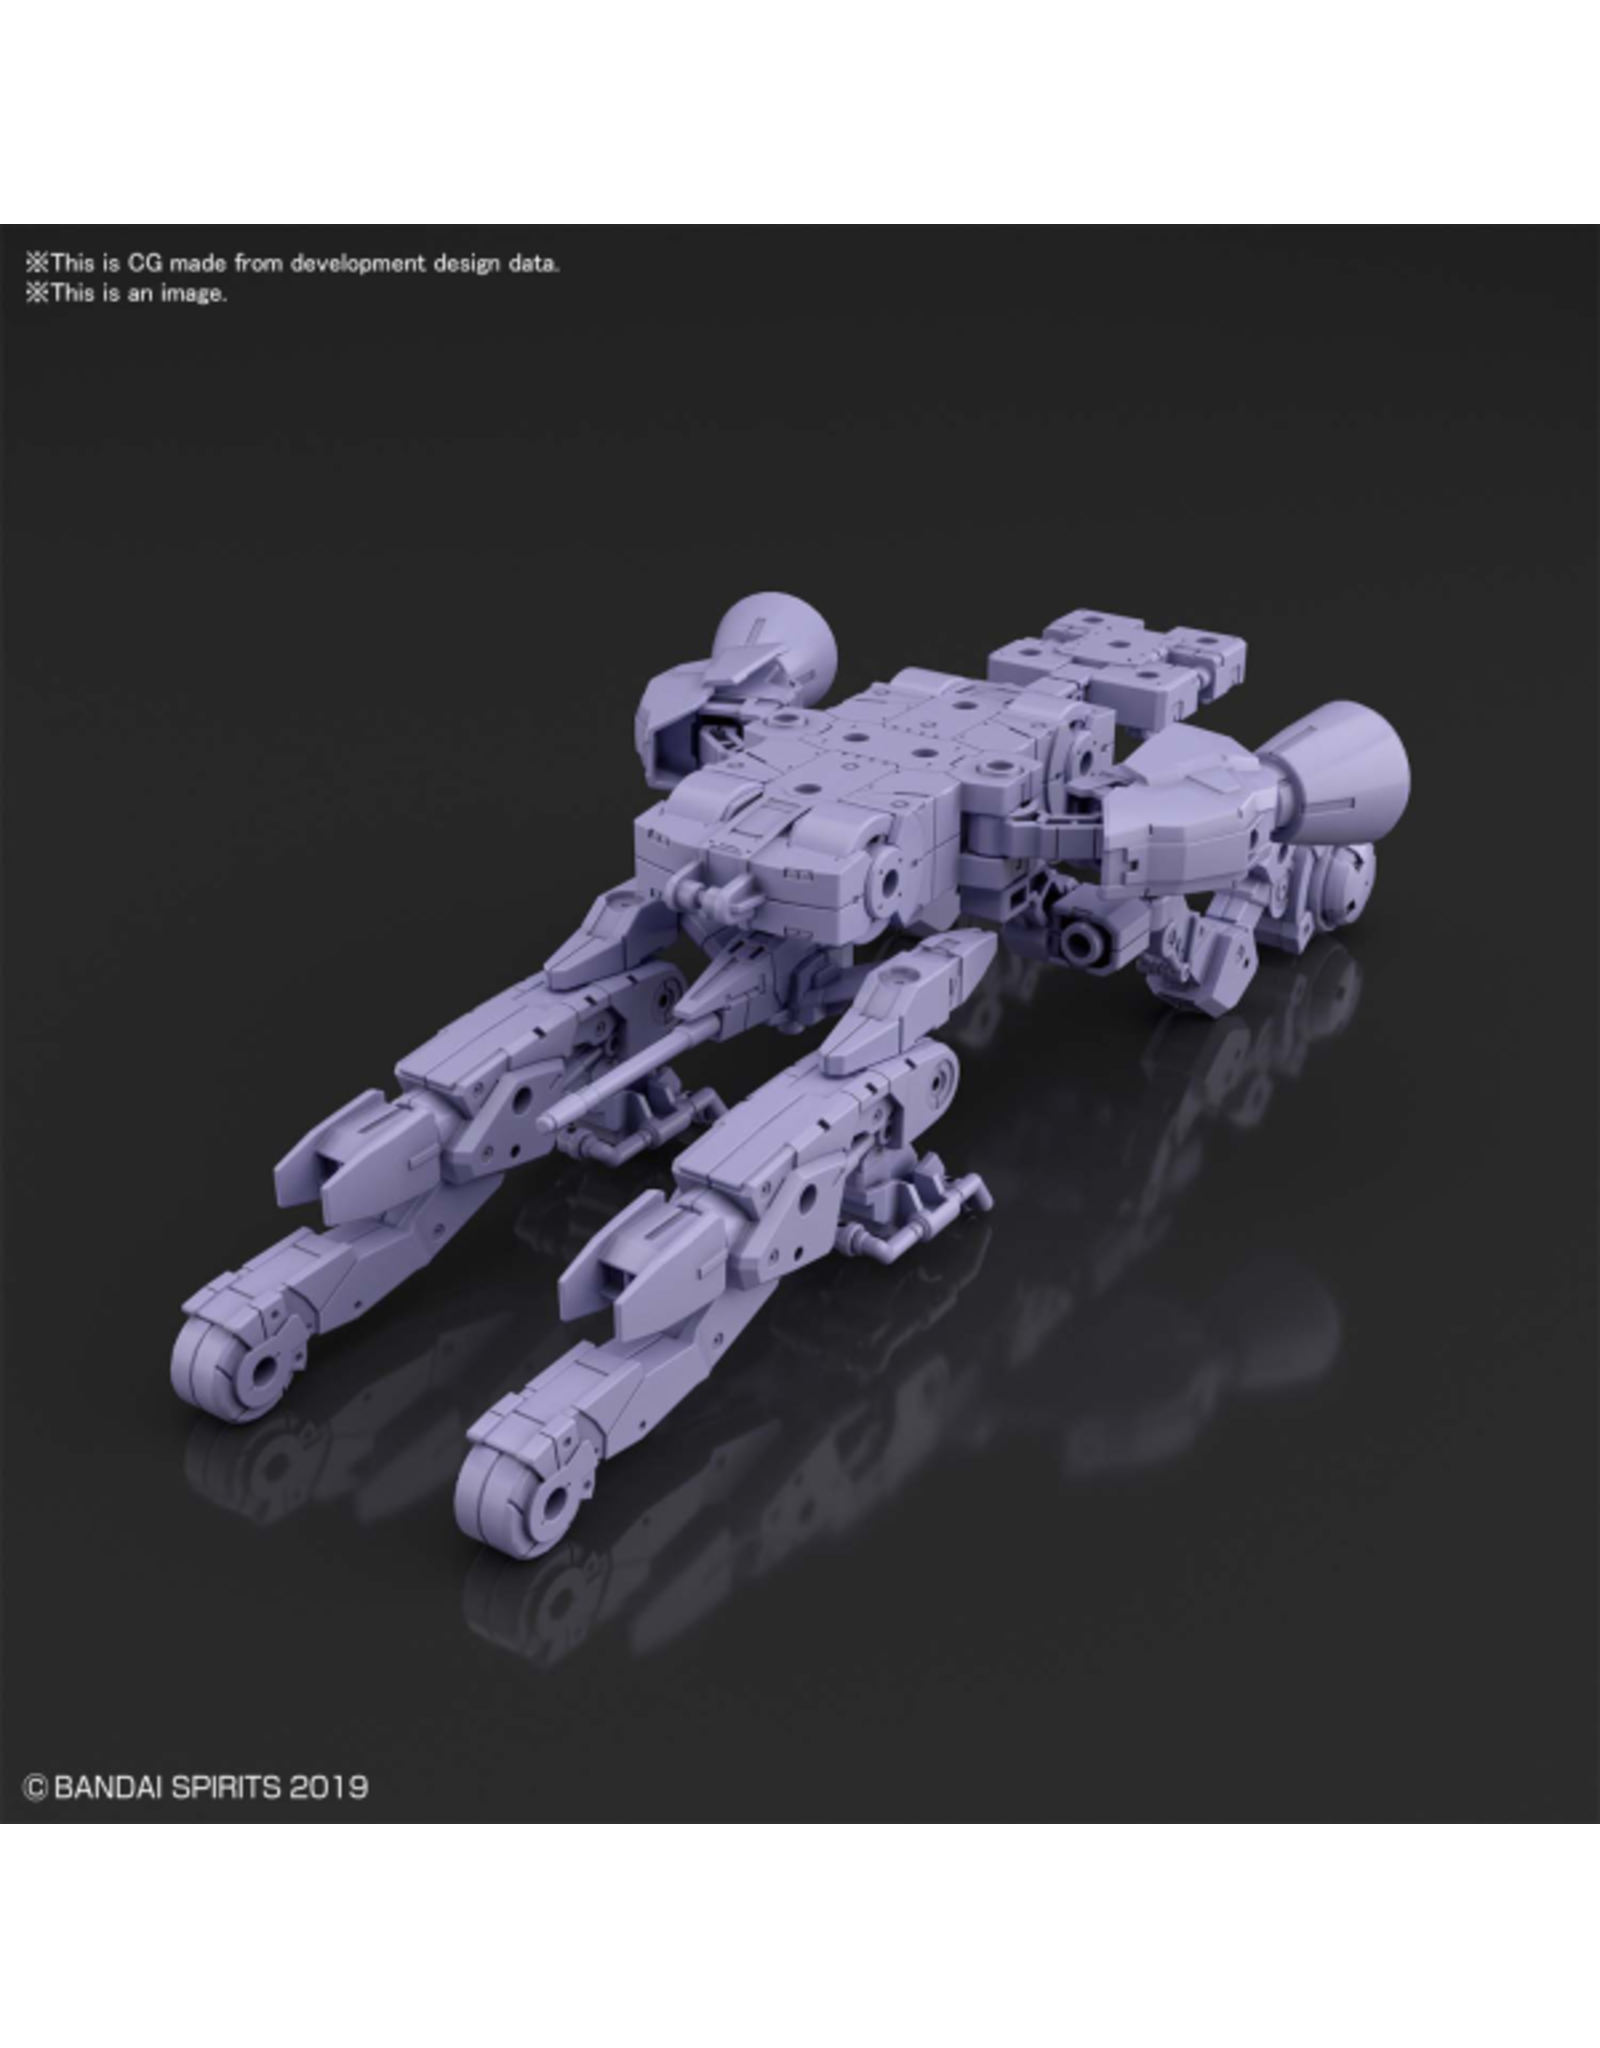 BANDAI 30MM 1/144 EXTENDED ARMAMENT VEHICLE (SPACE CRAFT Ver.) [PURPLE]